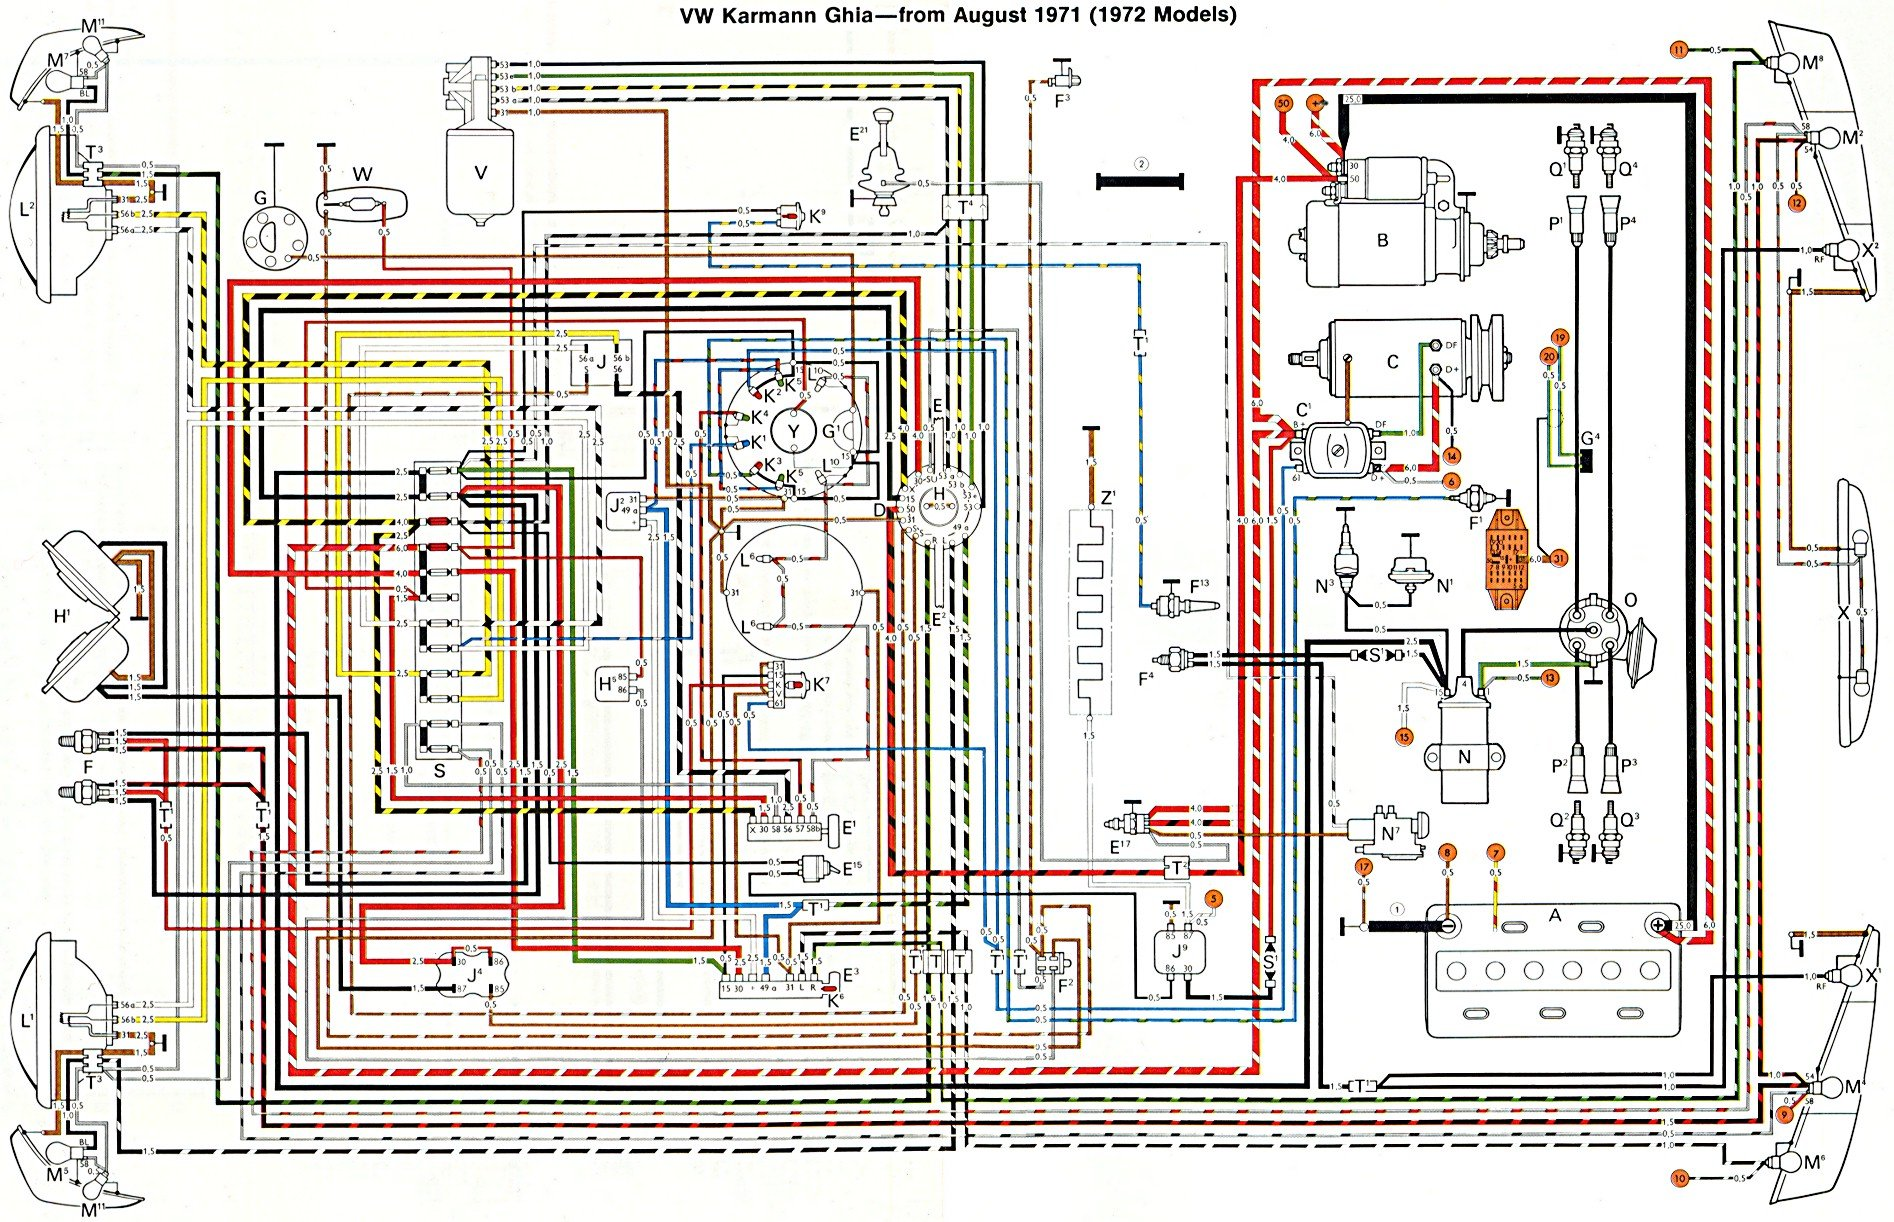 72ghia 72 vw beetle wiring diagram 2001 vw alternator wire diagram \u2022 free 1975 vw beetle wiring harness at eliteediting.co